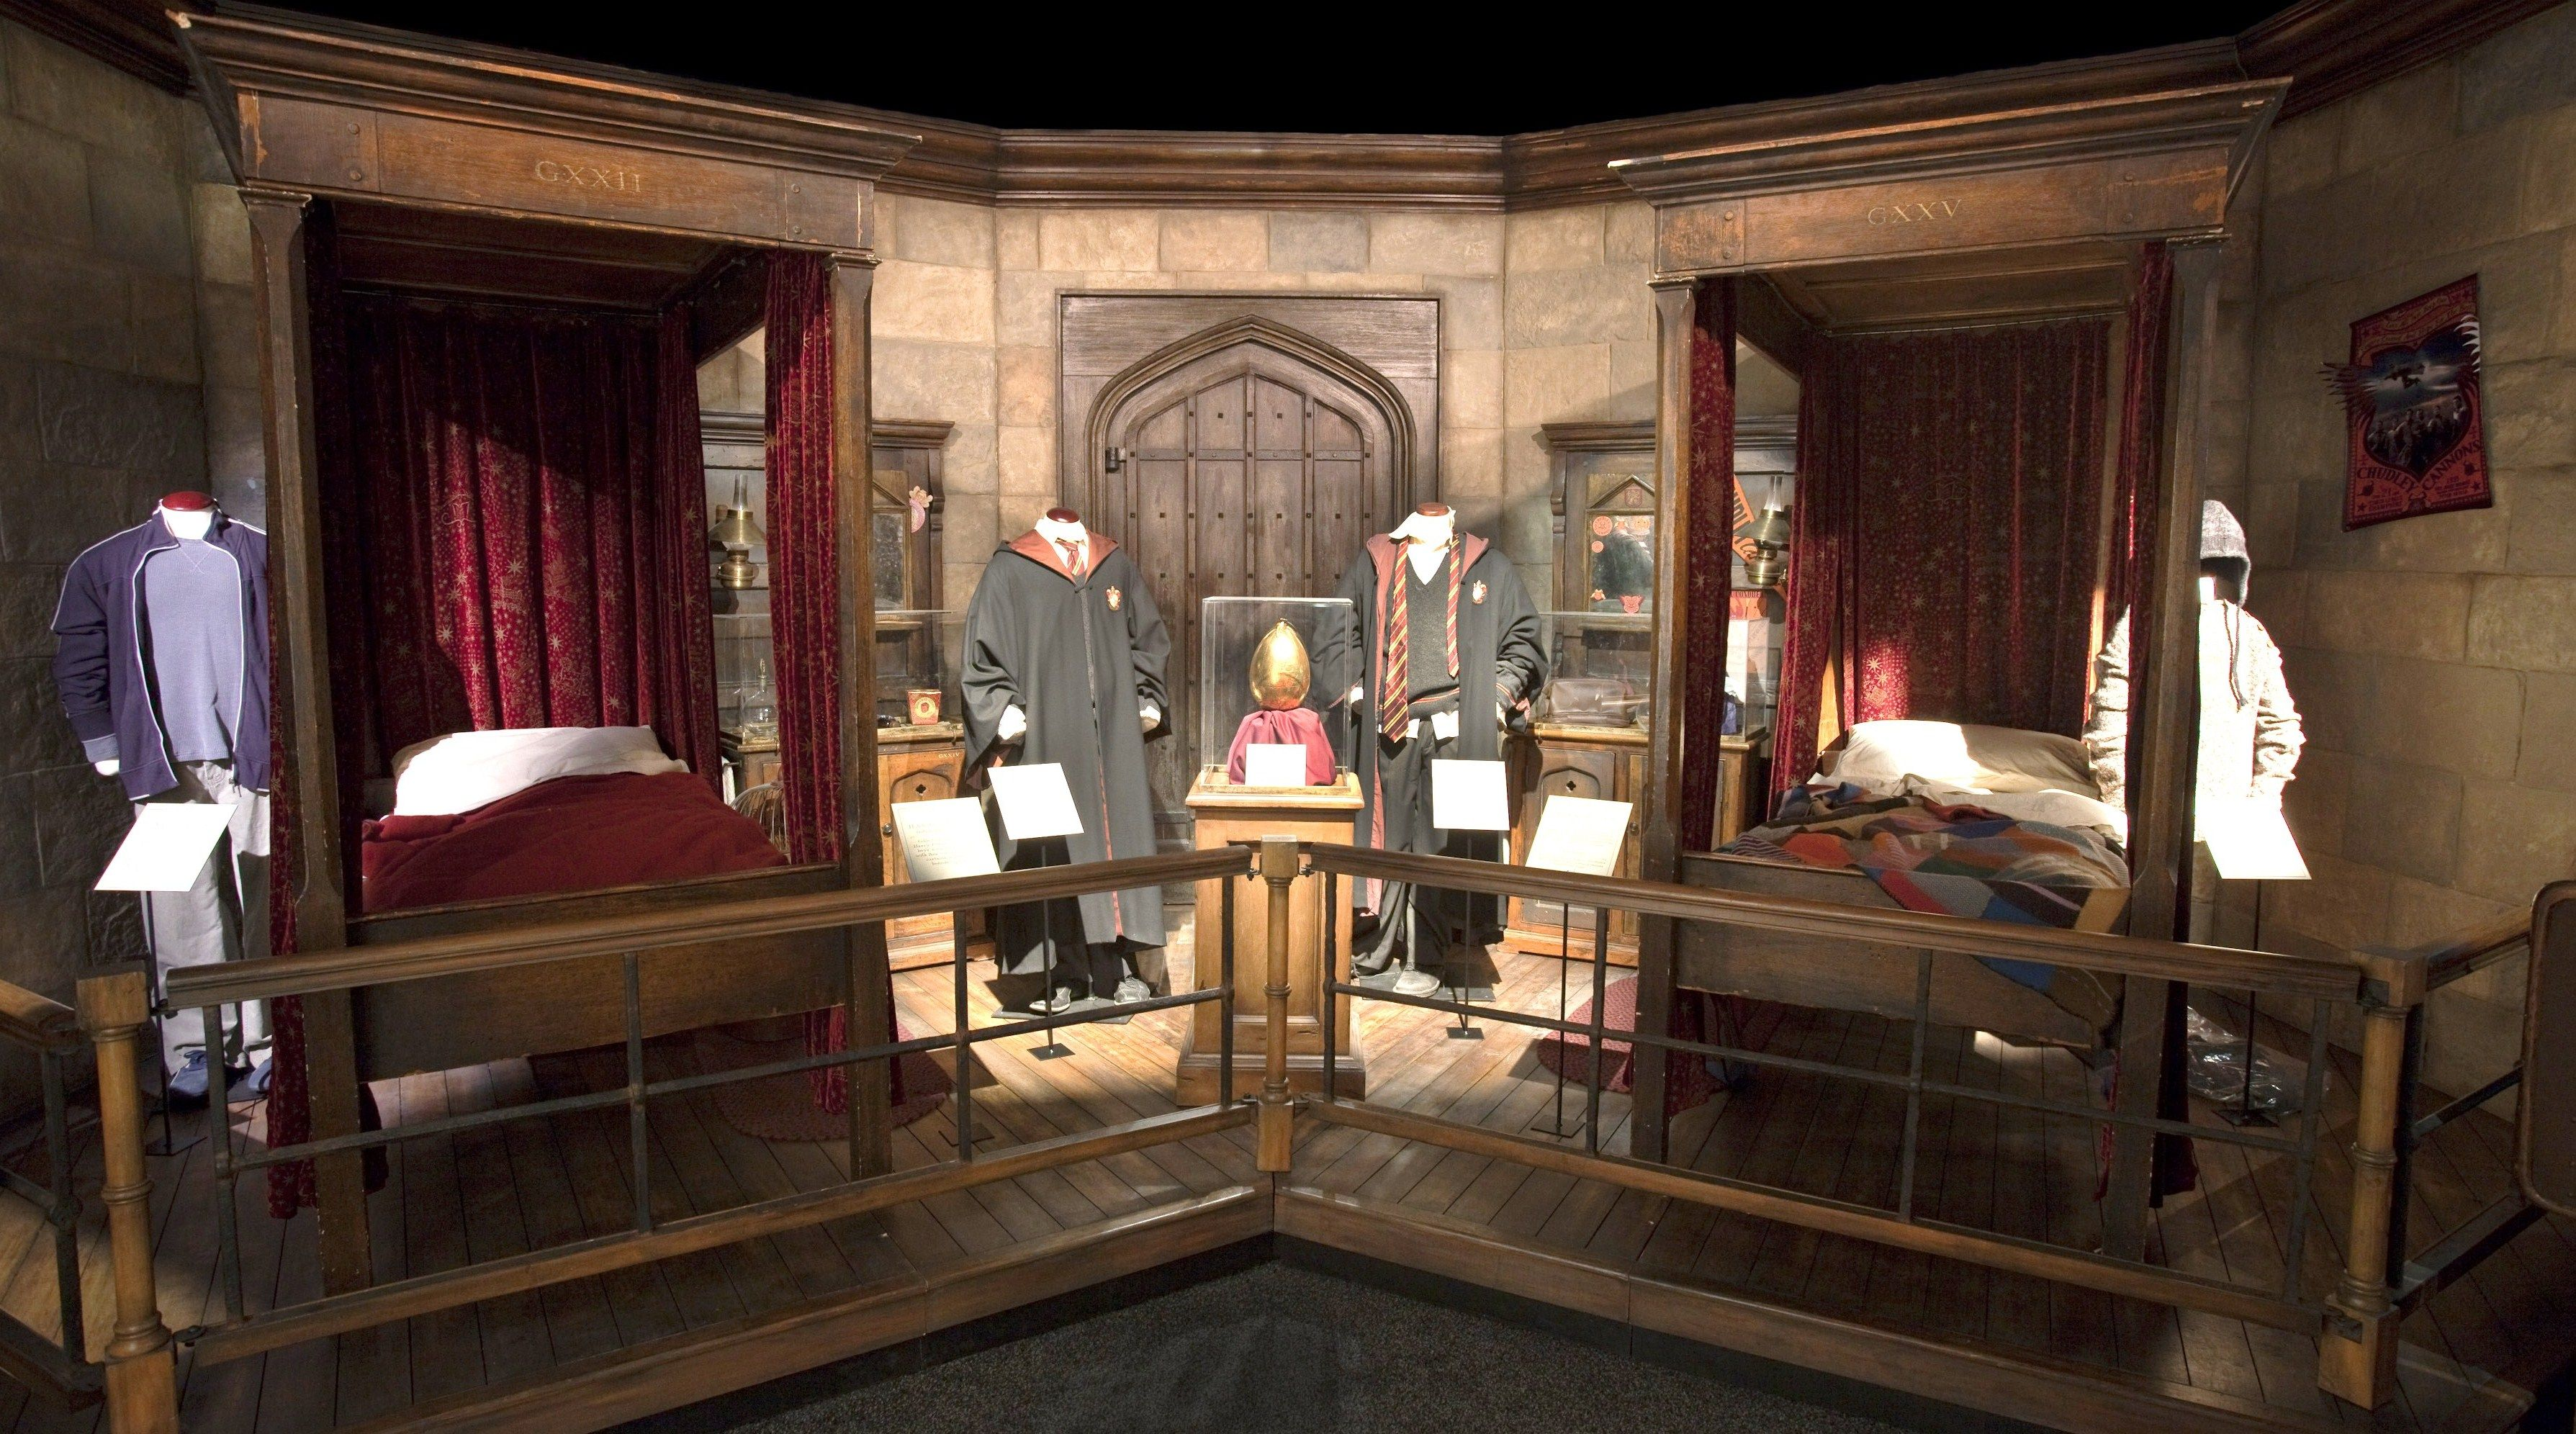 Hogwarts Bedroom This Is The Tour Display Of Harry Potter 39s Hogwarts